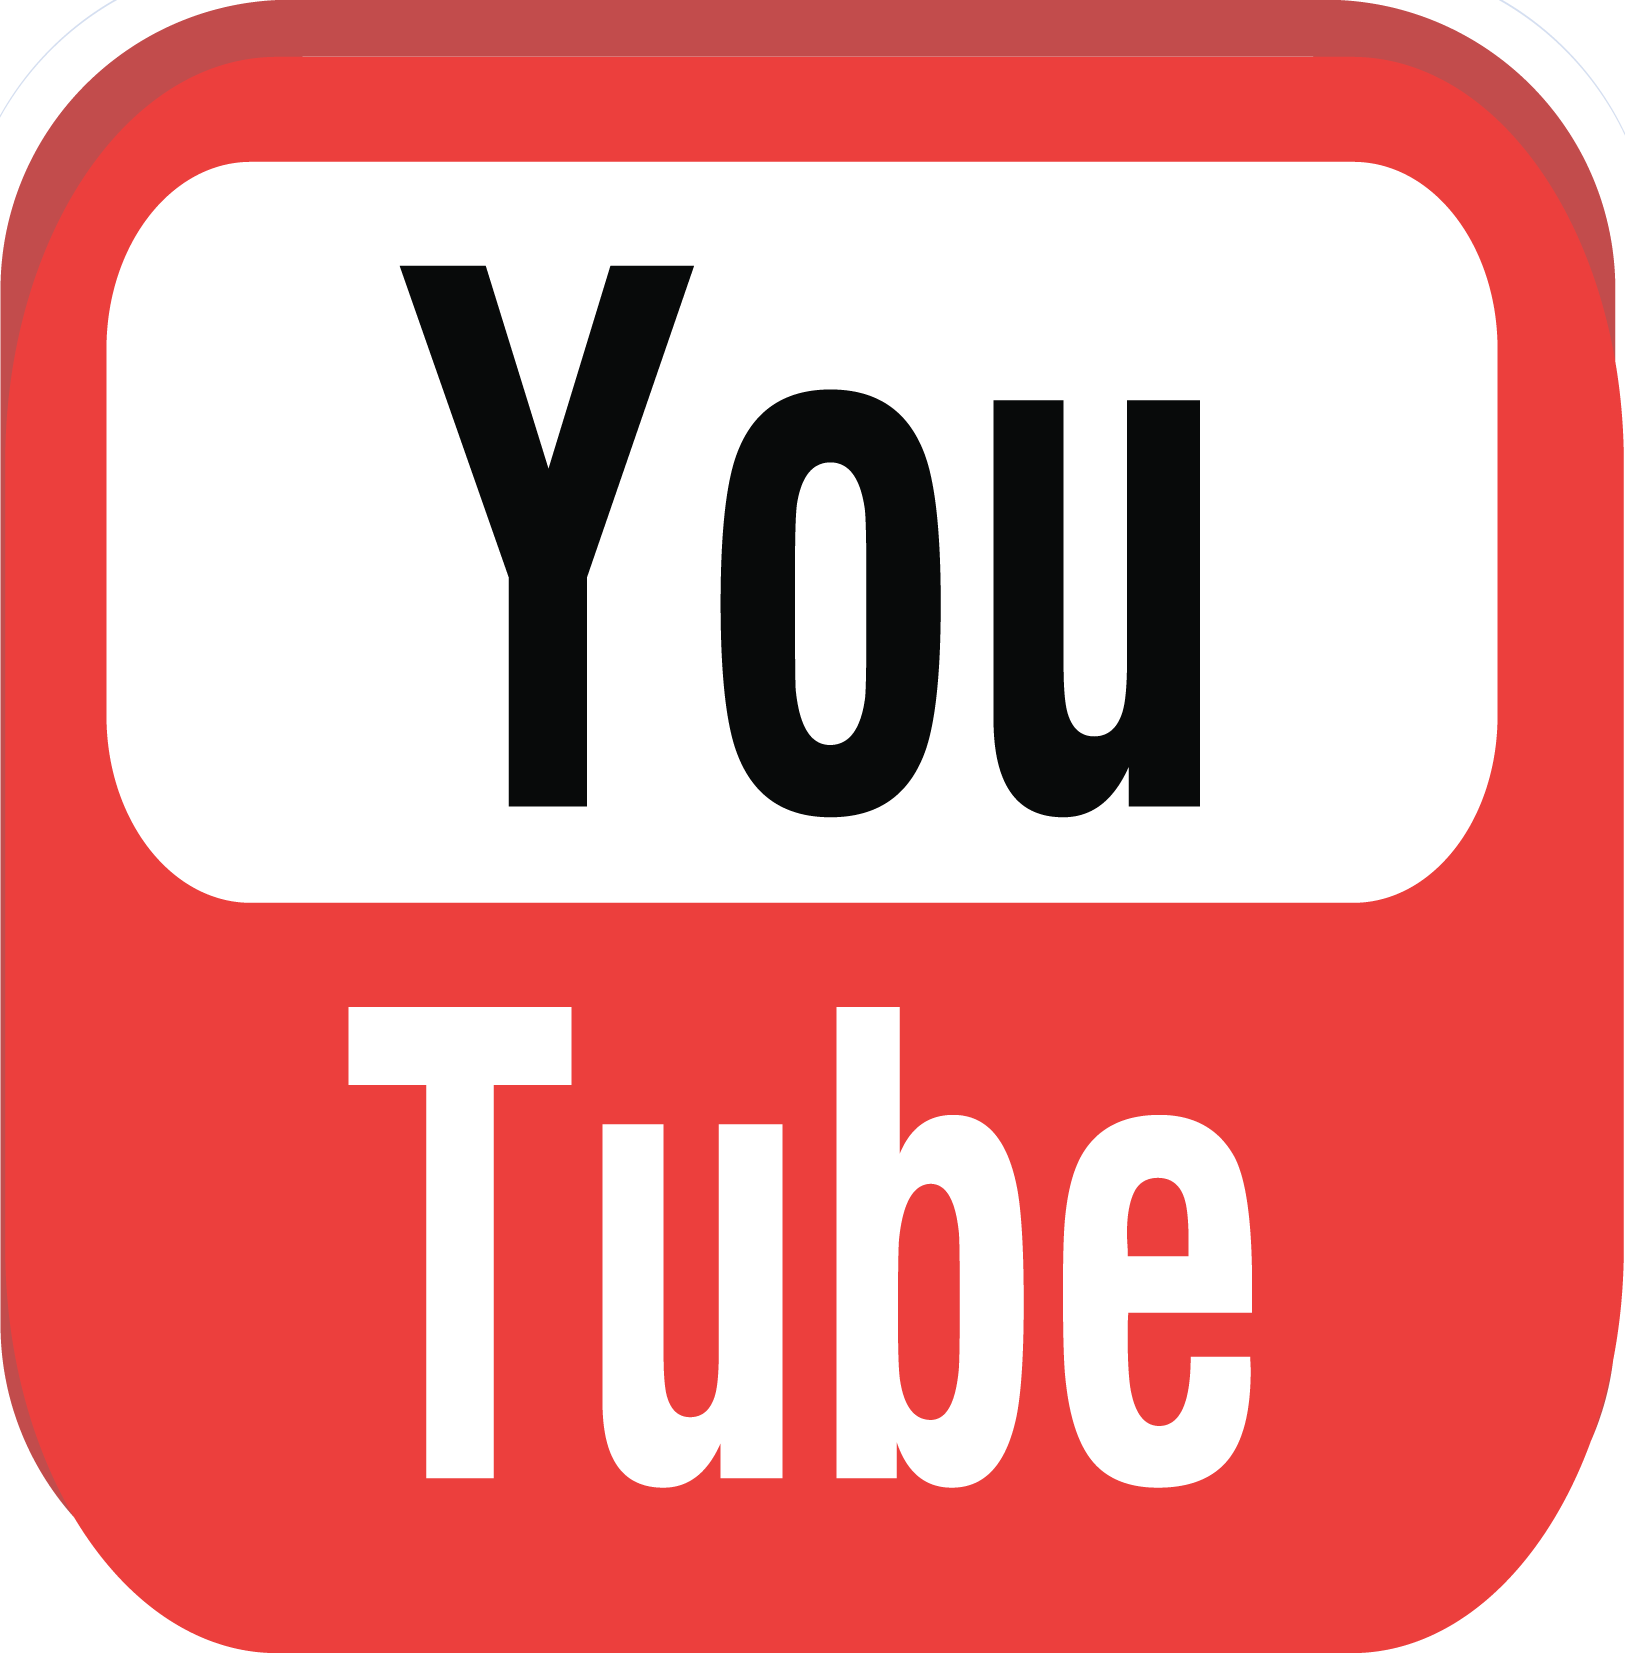 Subscribe to POLAR-Mohr Youtube Channel